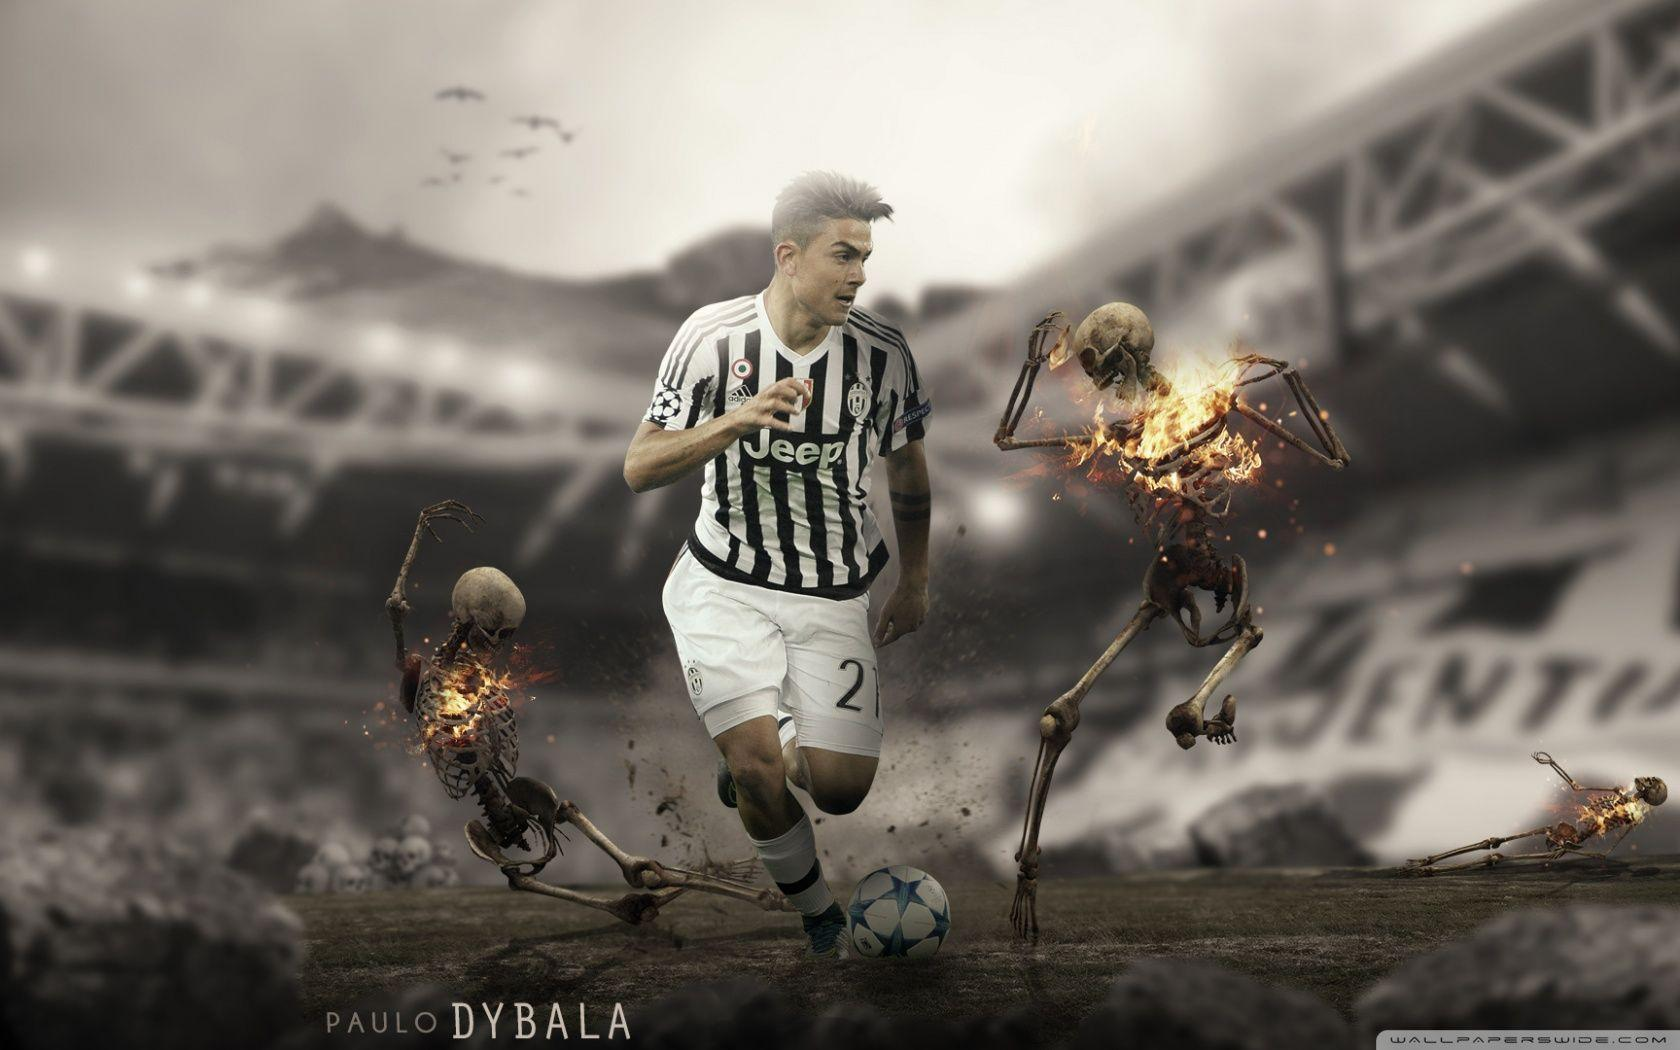 paulo dybala 2016 wallpaper - photo #16